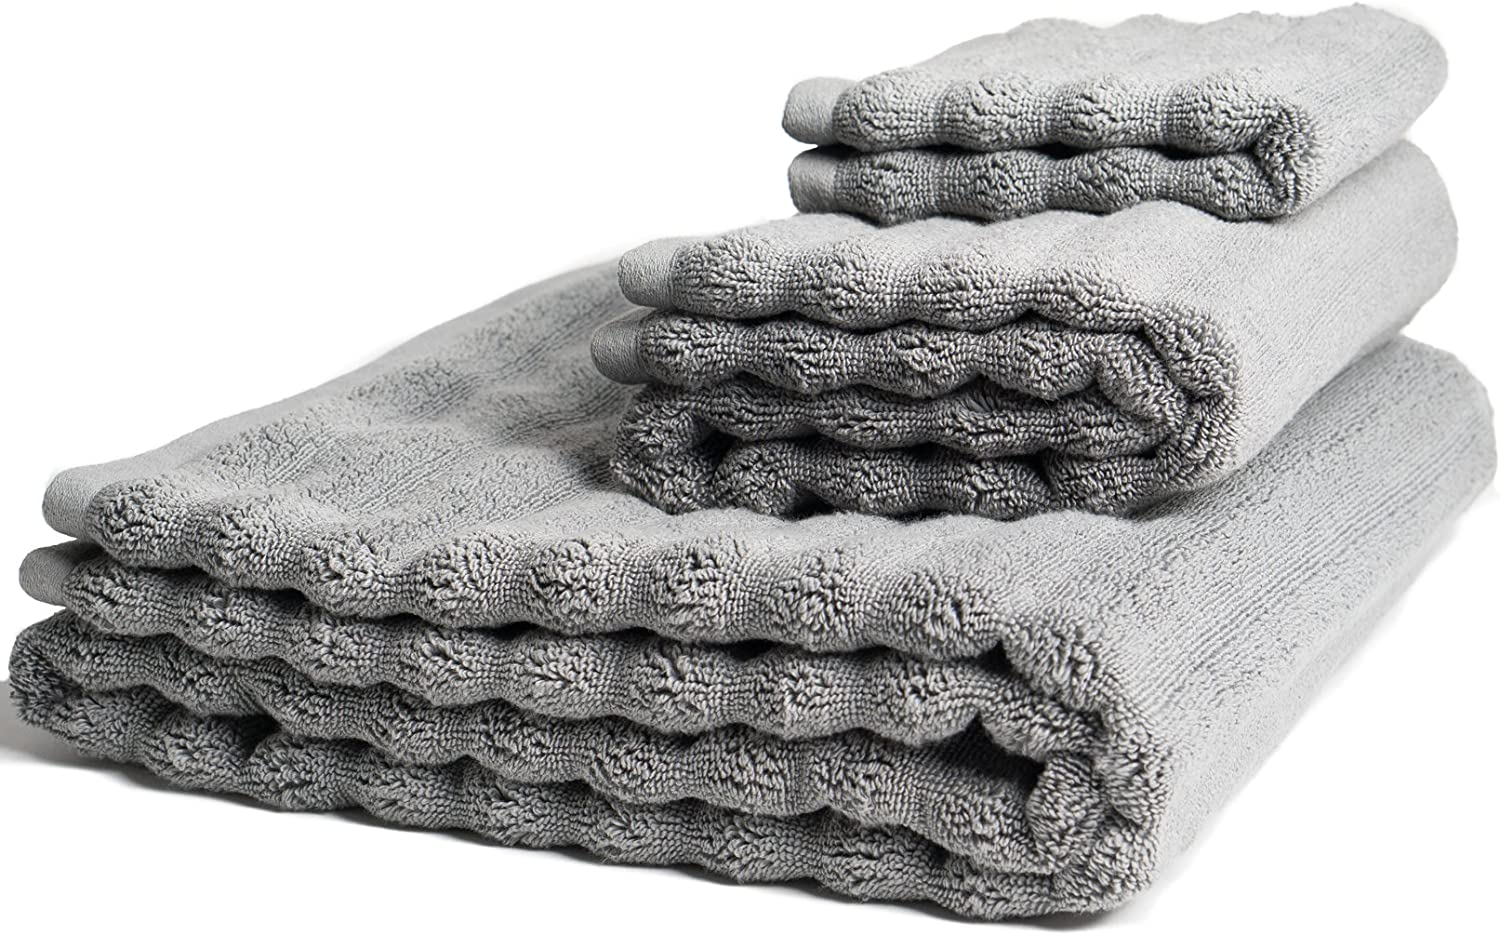 Nutrl Home Classic Bath Towel Set - Antimicrobial 100% Supima Cotton (Grey) Premium Luxury Bath, Hand, Washcloth Towels Perfect for Hotels, Travel, Bathrooms, Spa, and Gym